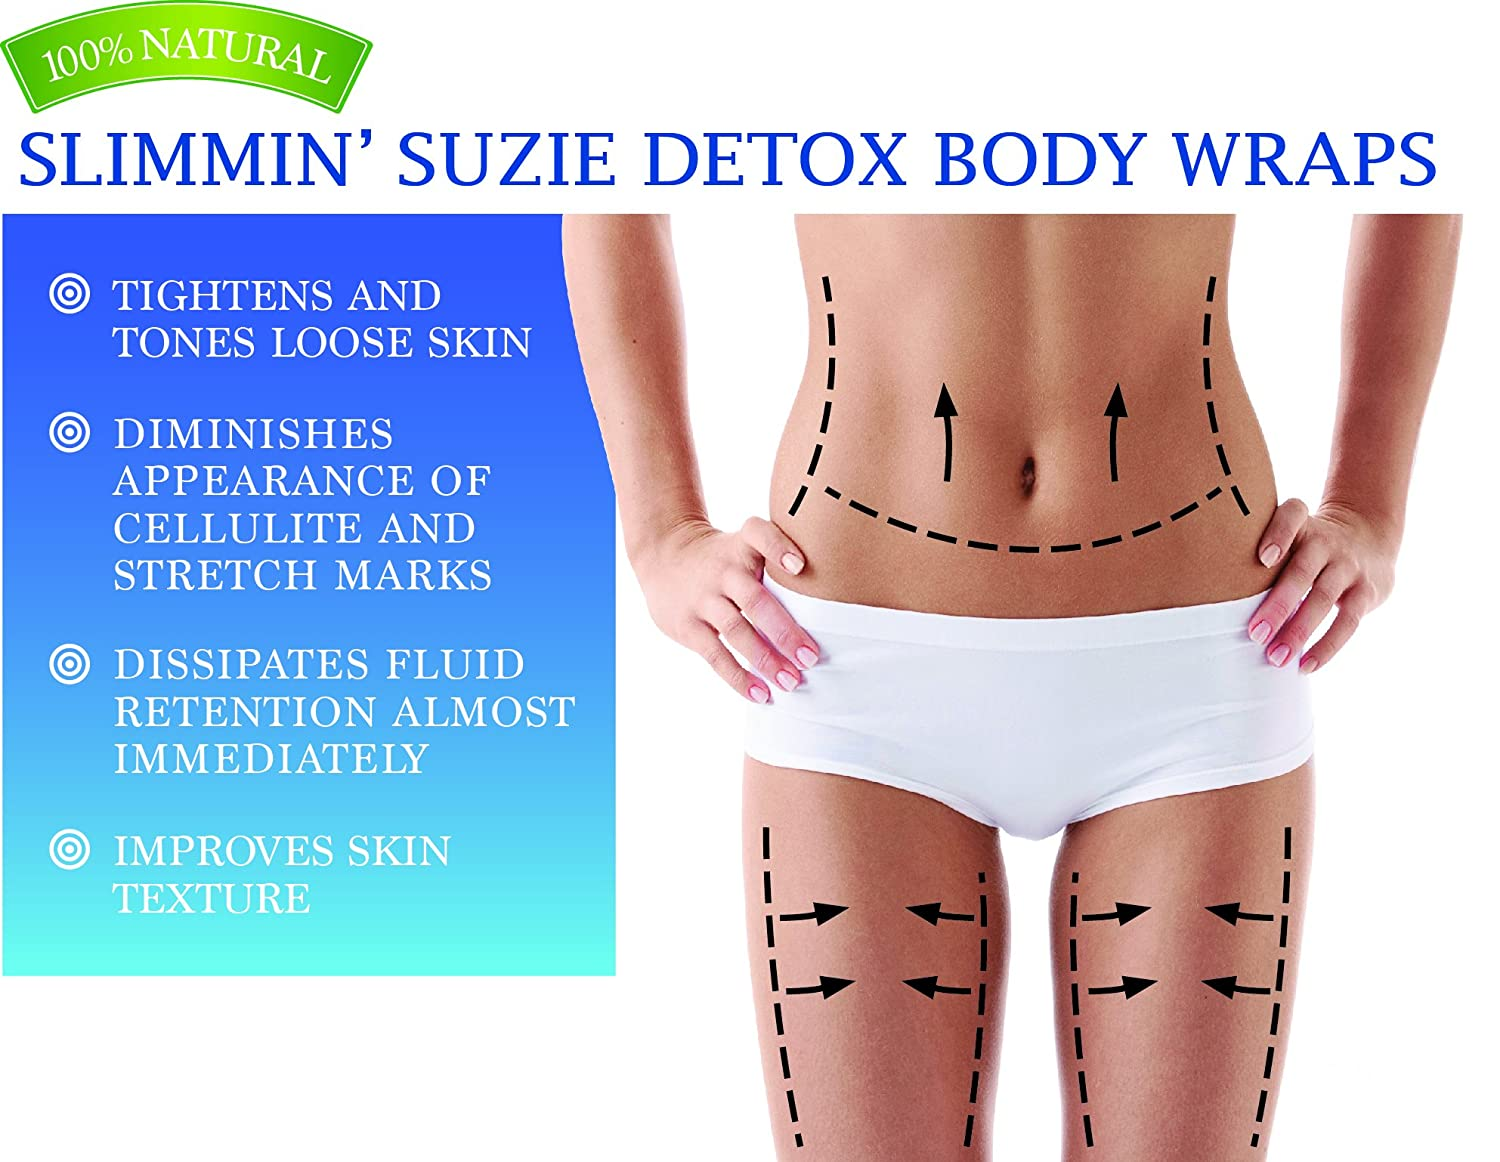 body wraps weight loss adelaide